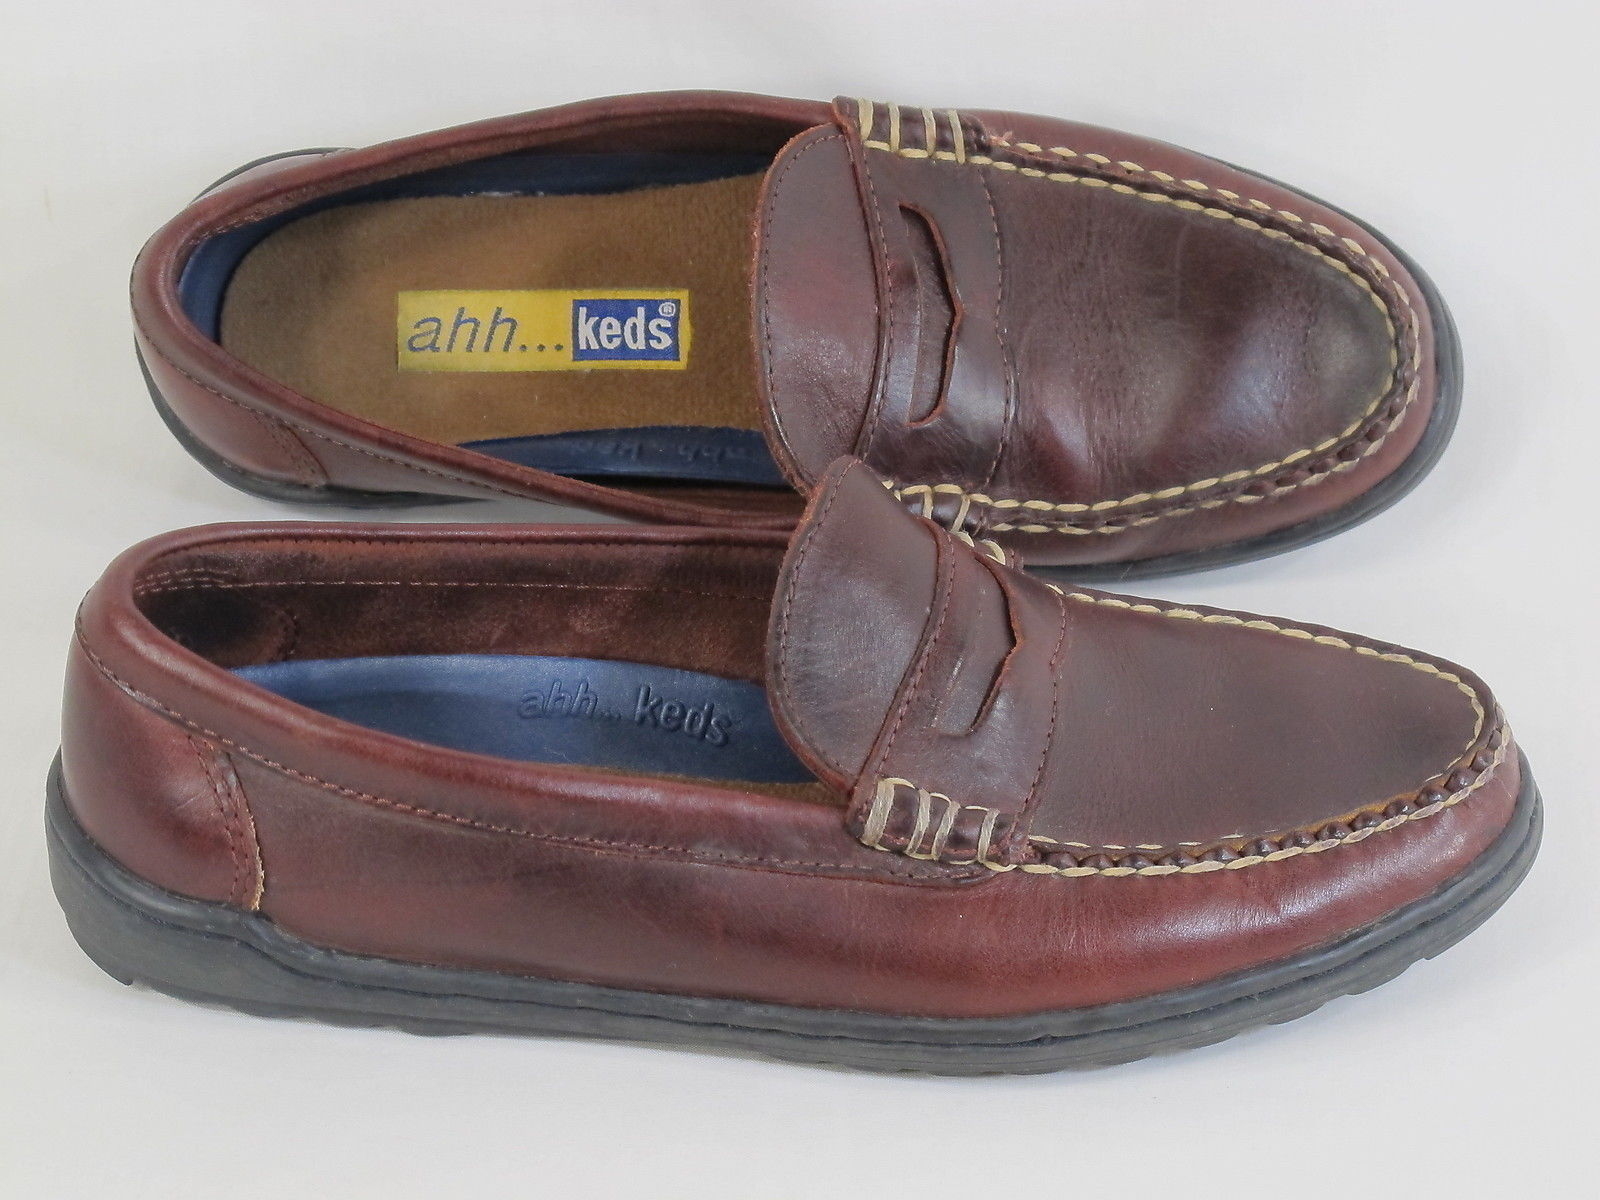 ce4660652a2a7 ahh...KEDS Cordovan Leather Slip on Loafer and 50 similar items